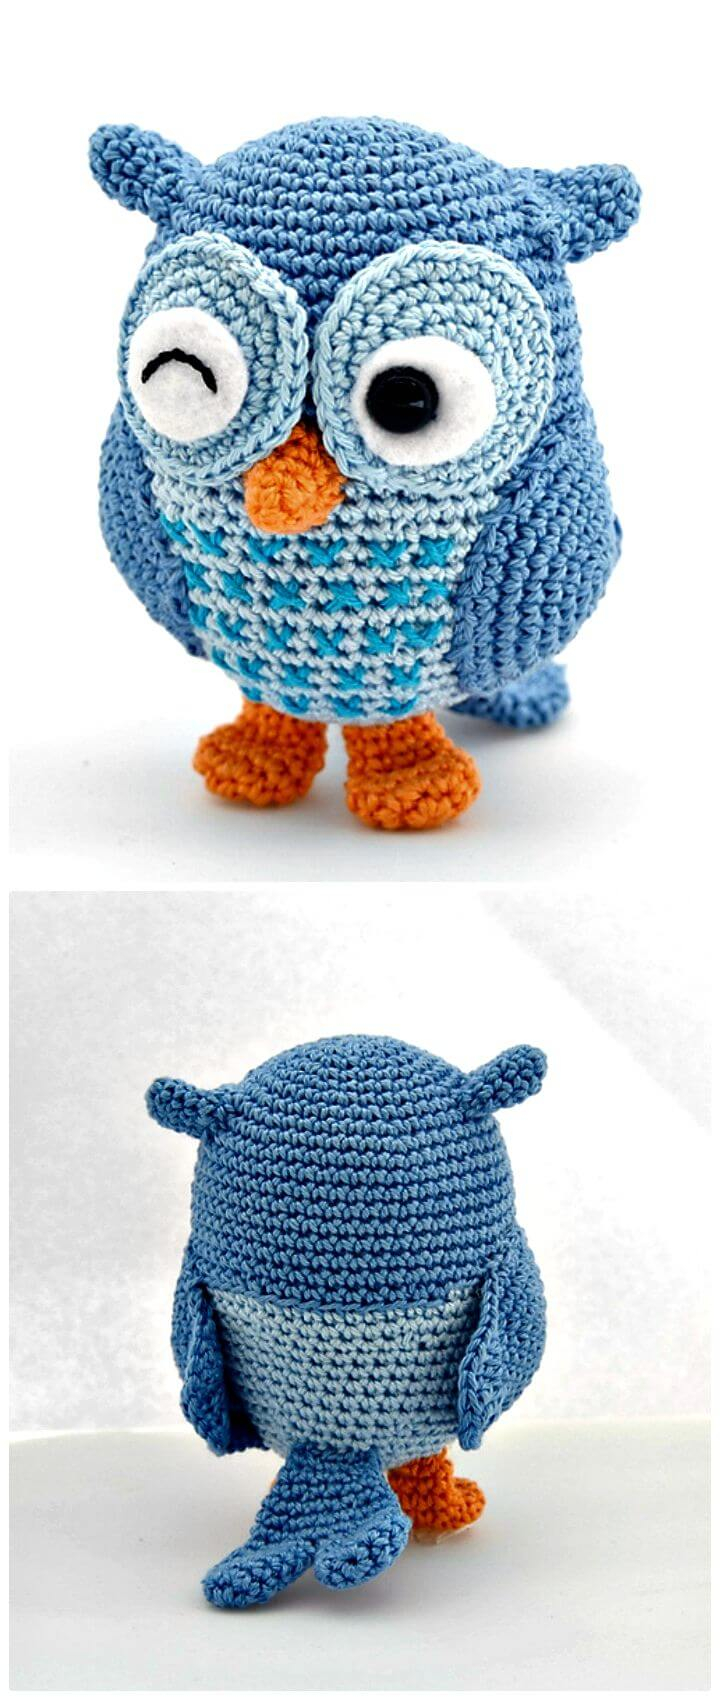 Quick Large Crochet Doll Patterns to Choose Crochet Amigurumi 225 Free Crochet Amigurumi Patterns Diy Crafts